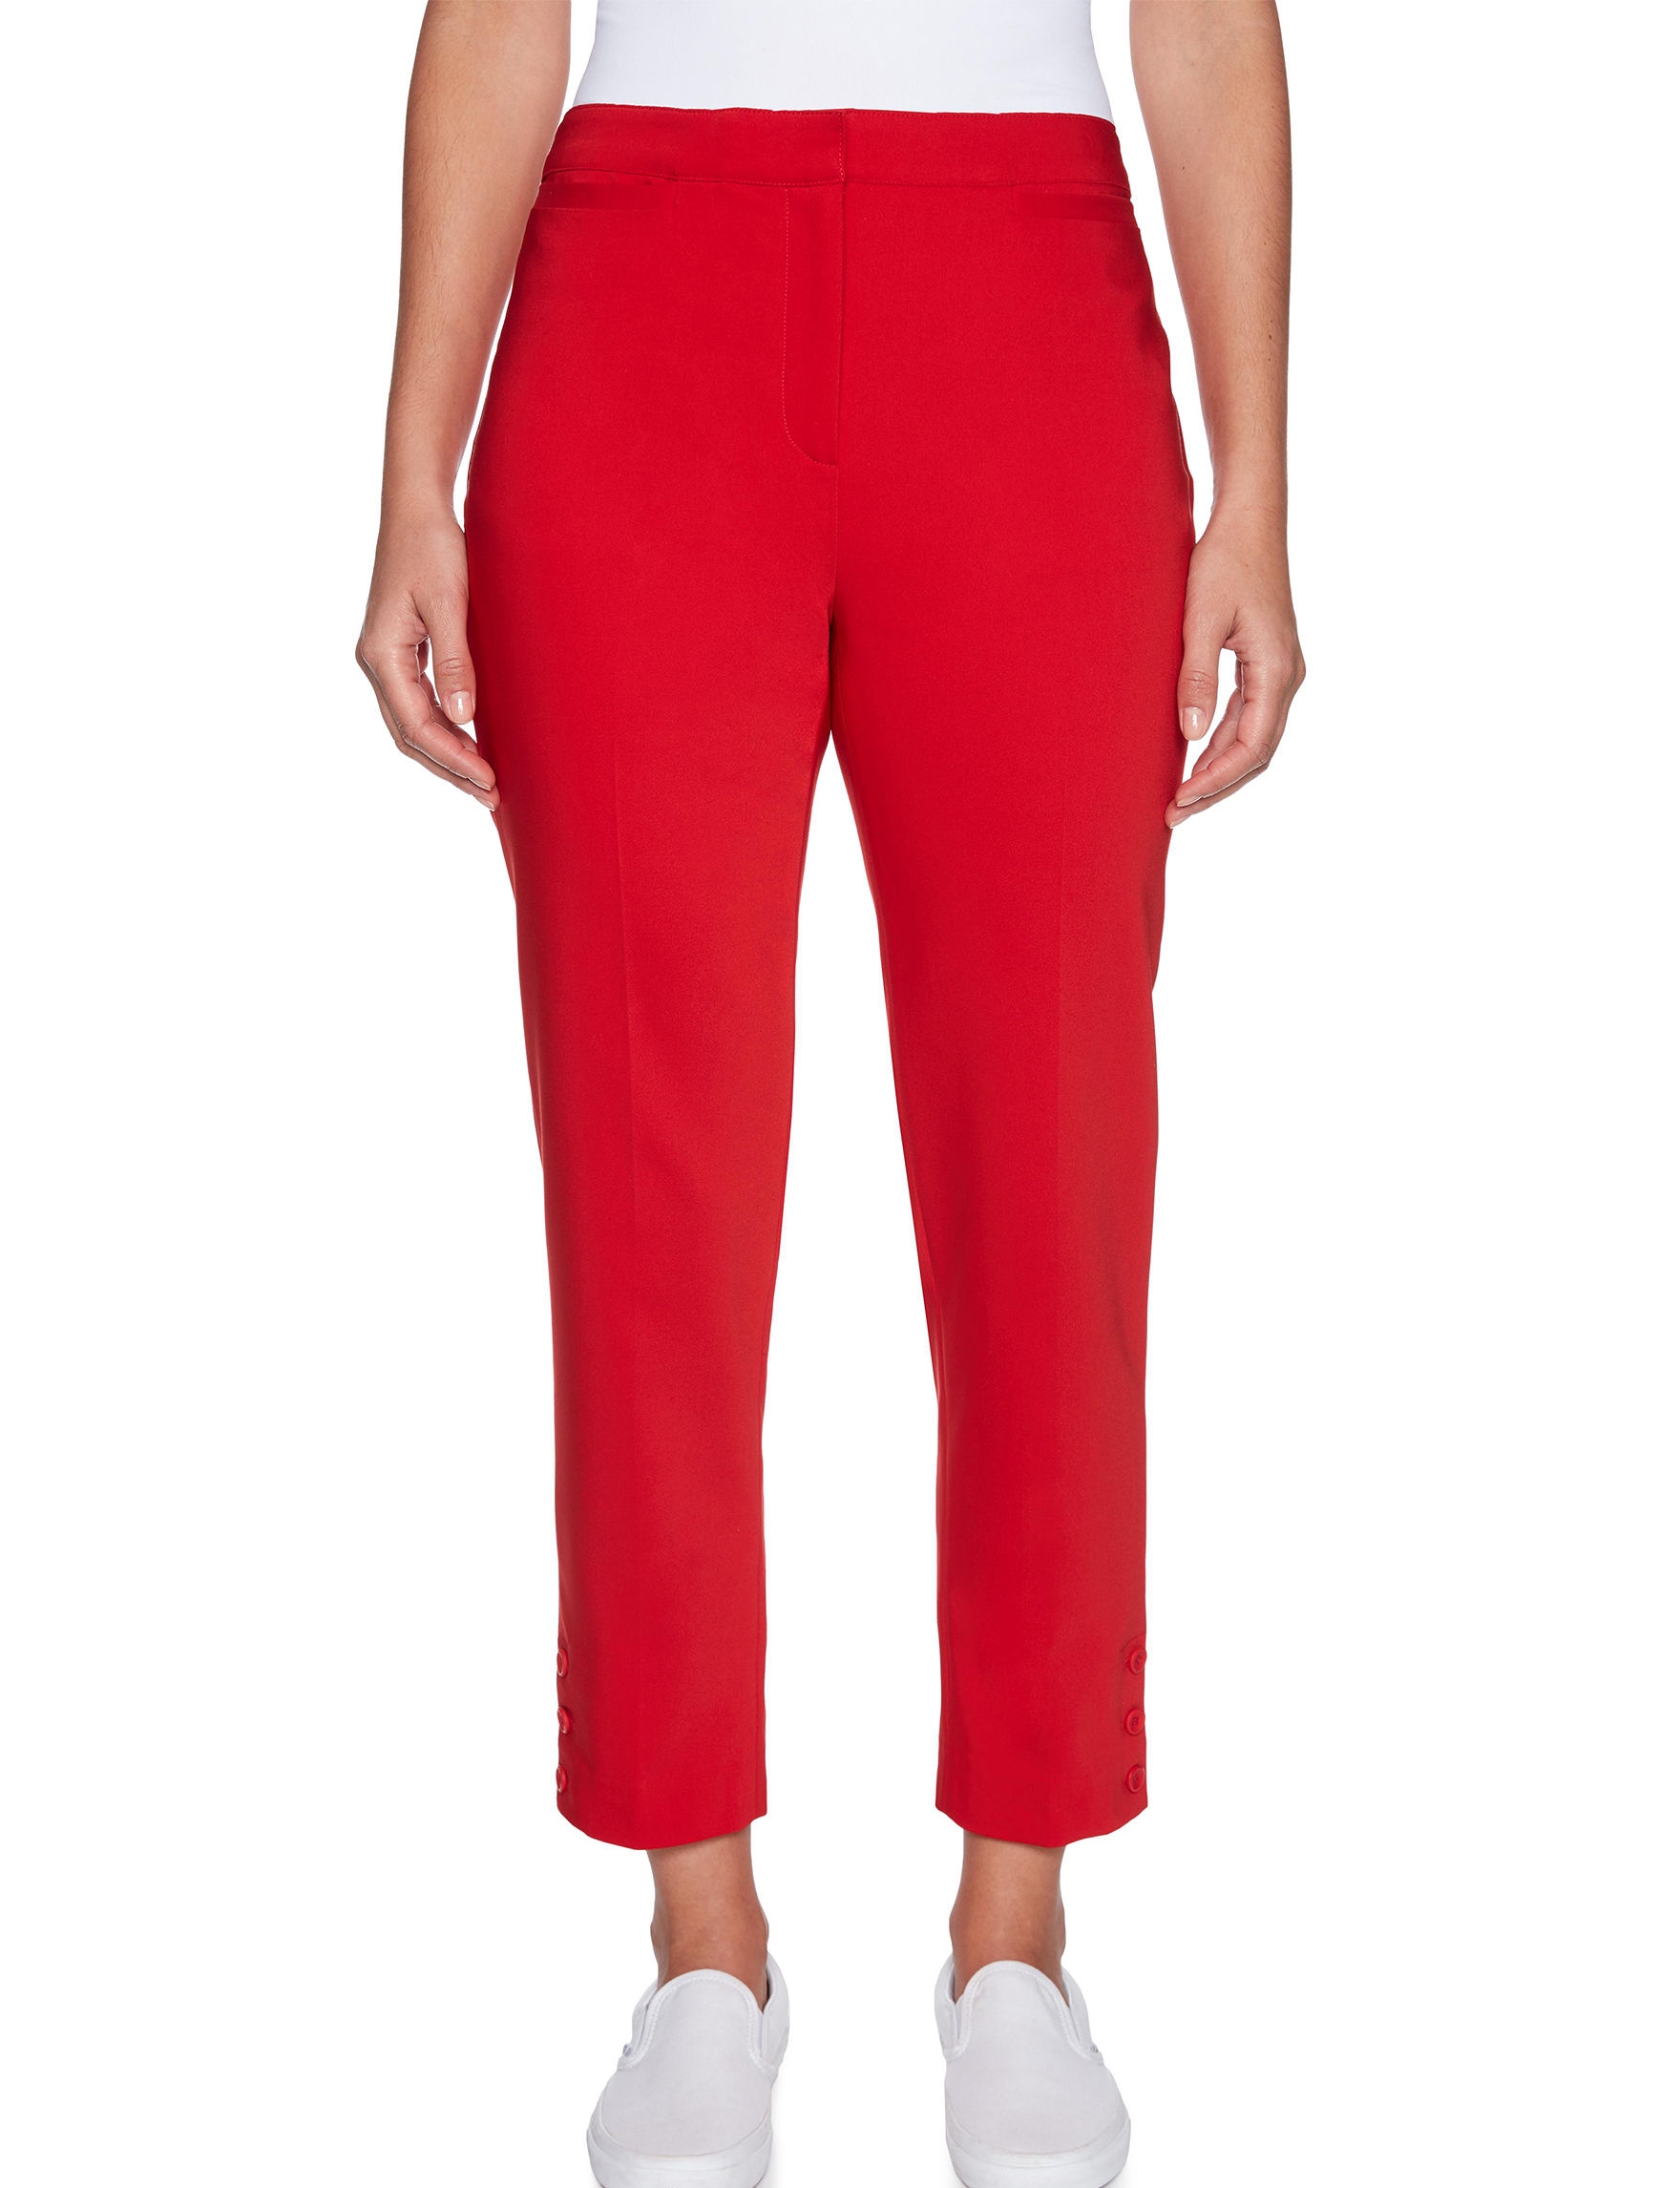 Ruby Road Red Capris & Crops